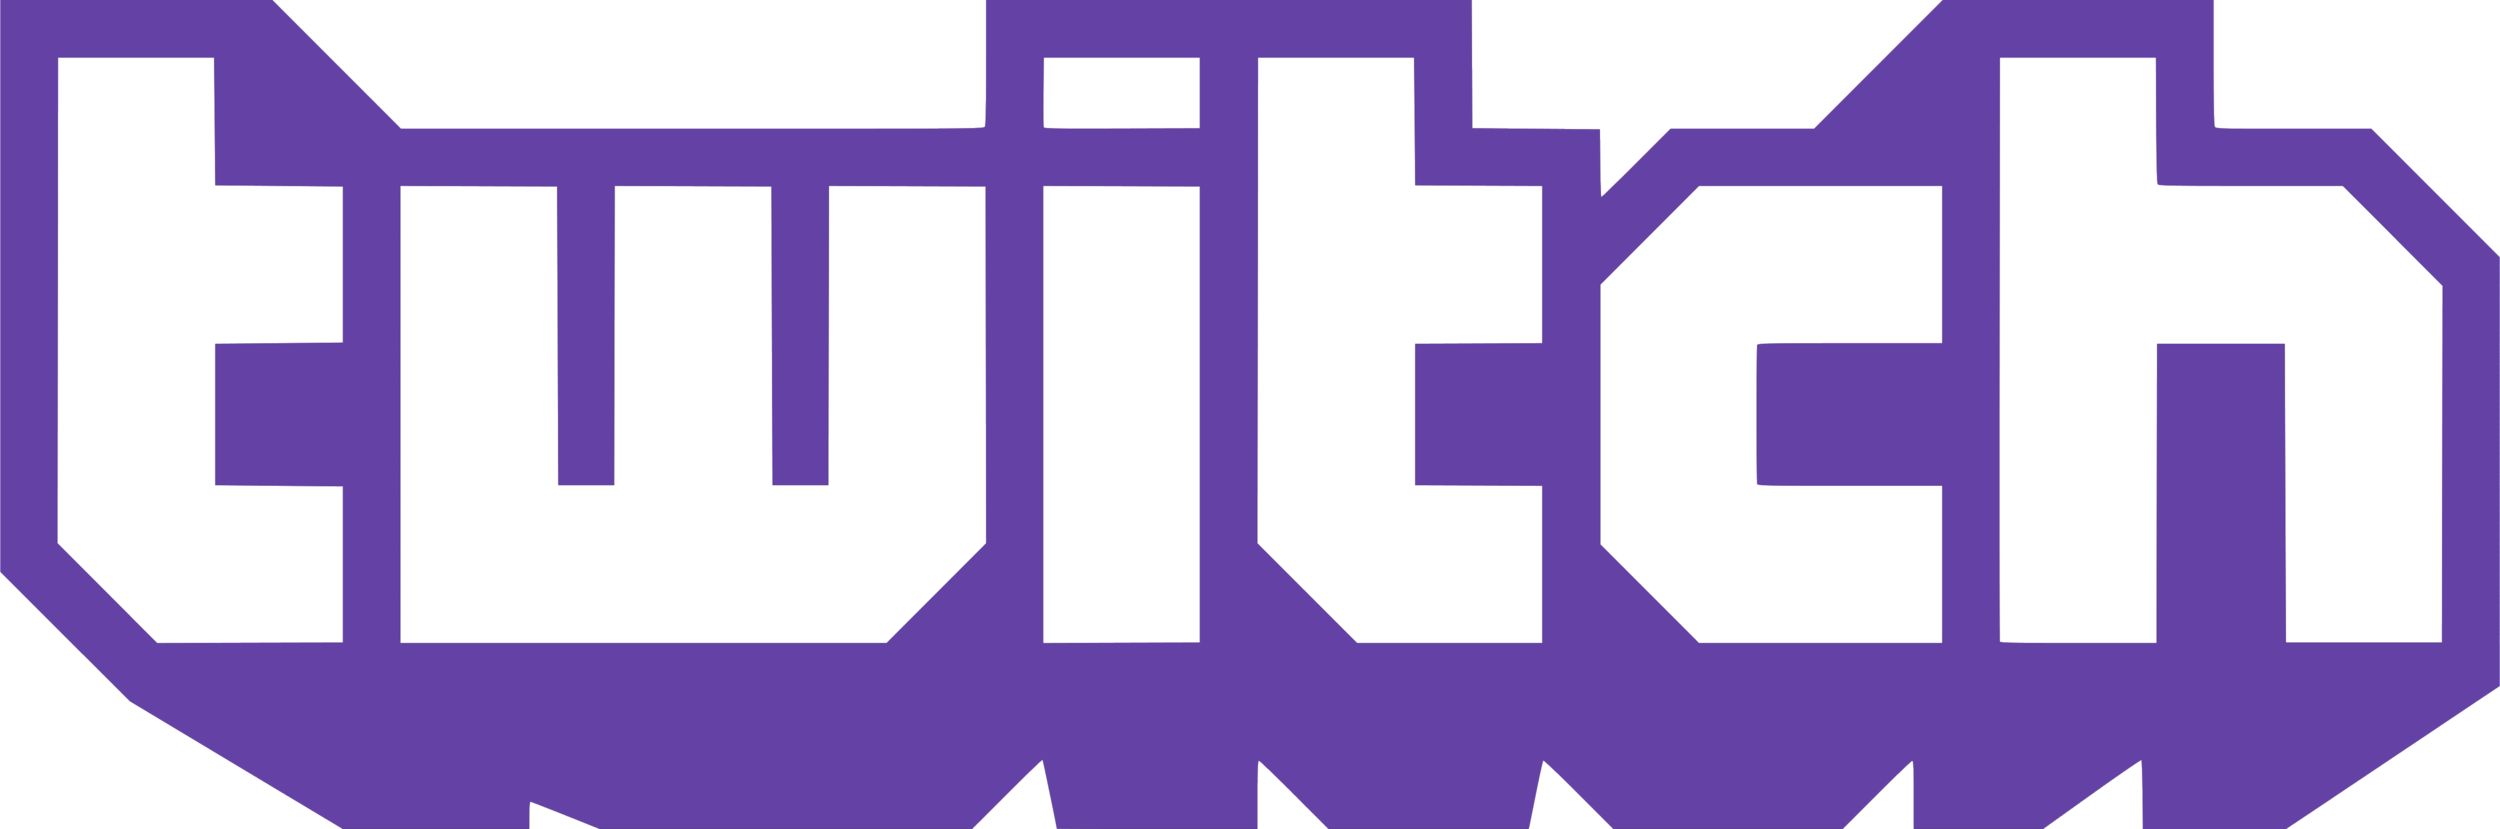 Twitch_logo.png